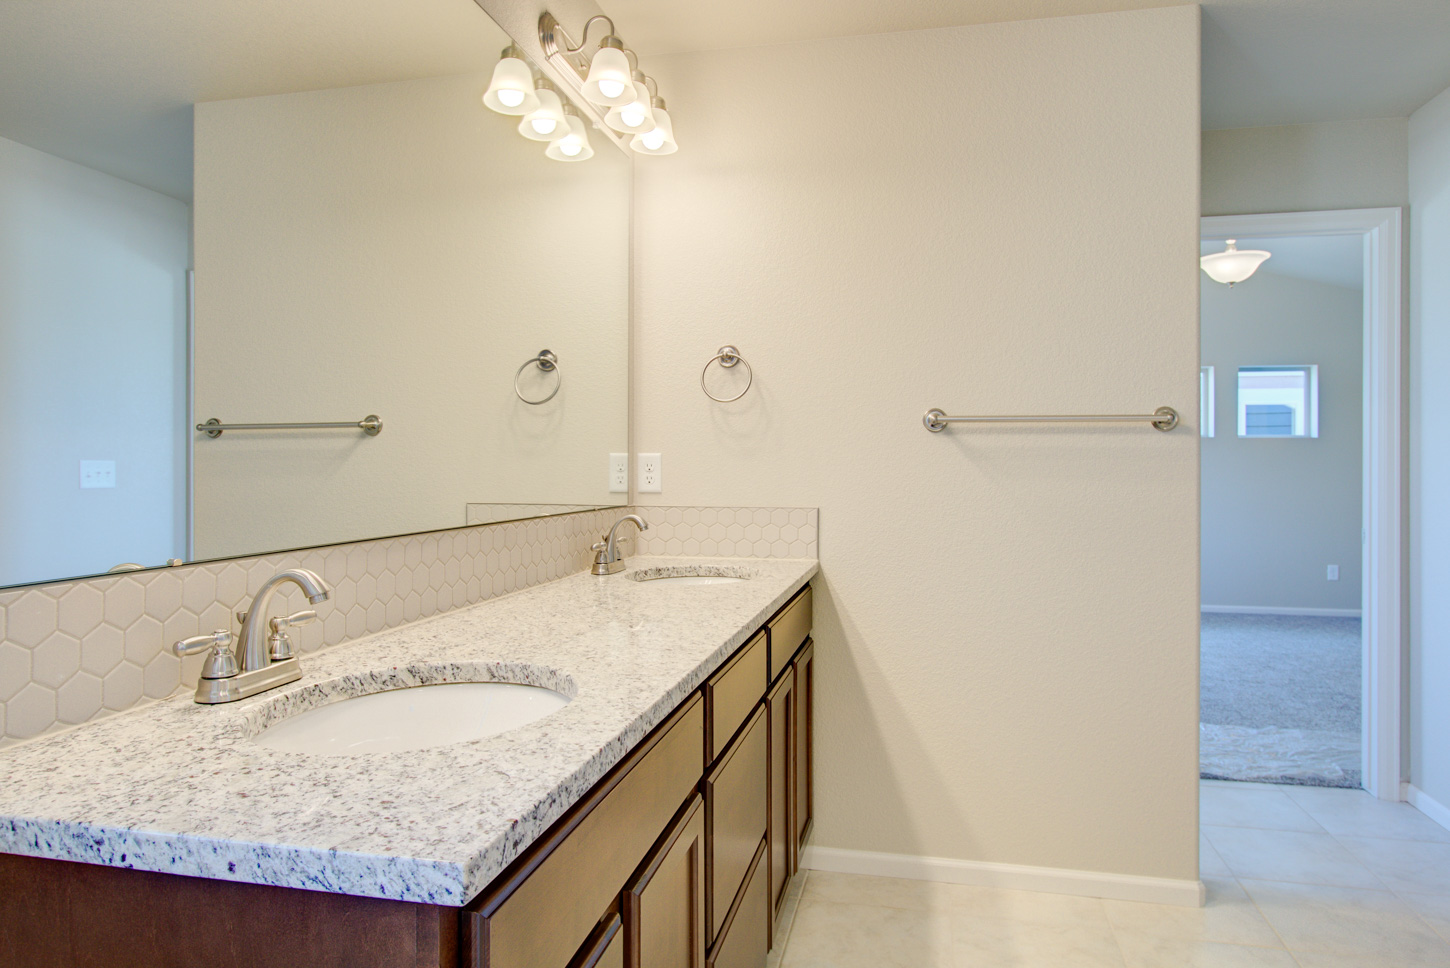 18_4426_20fox_20grove_20dr_ft_20collins_master_20bathroom_new_20home